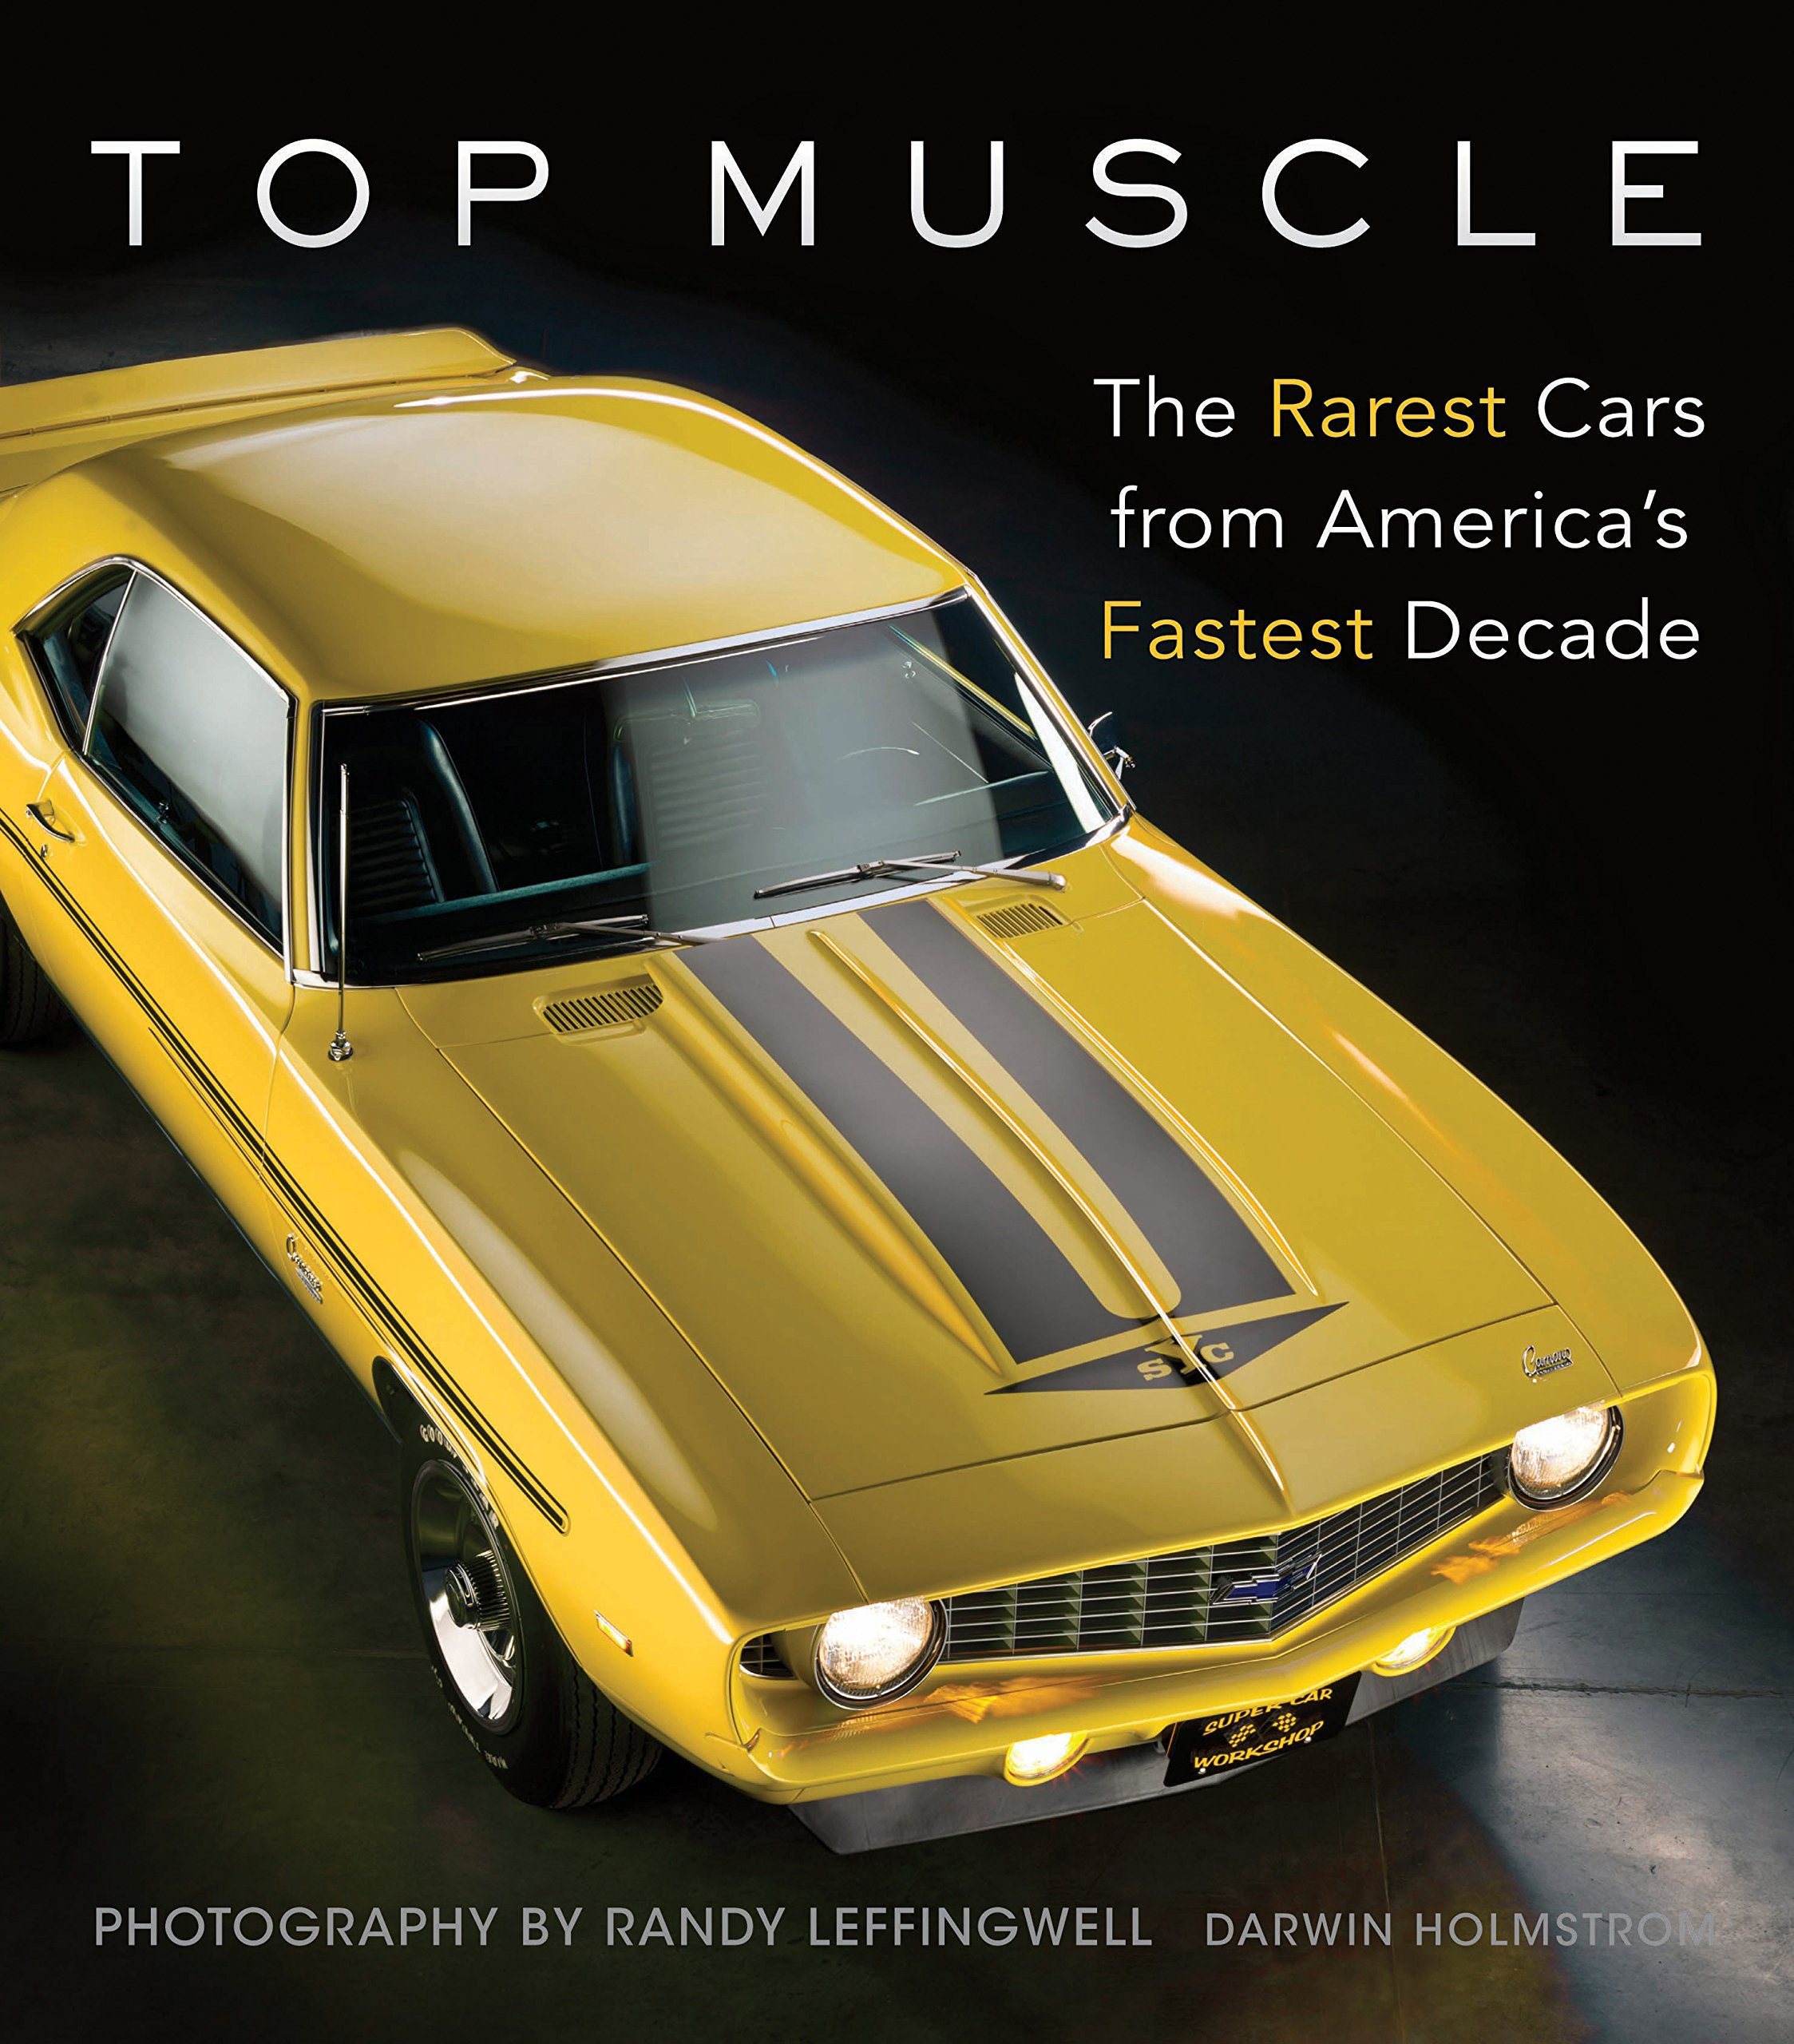 Top muscle the rarest cars from americas fastest decade darwin top muscle the rarest cars from americas fastest decade darwin holmstrom randy leffingwell 0752748345140 amazon books fandeluxe Images